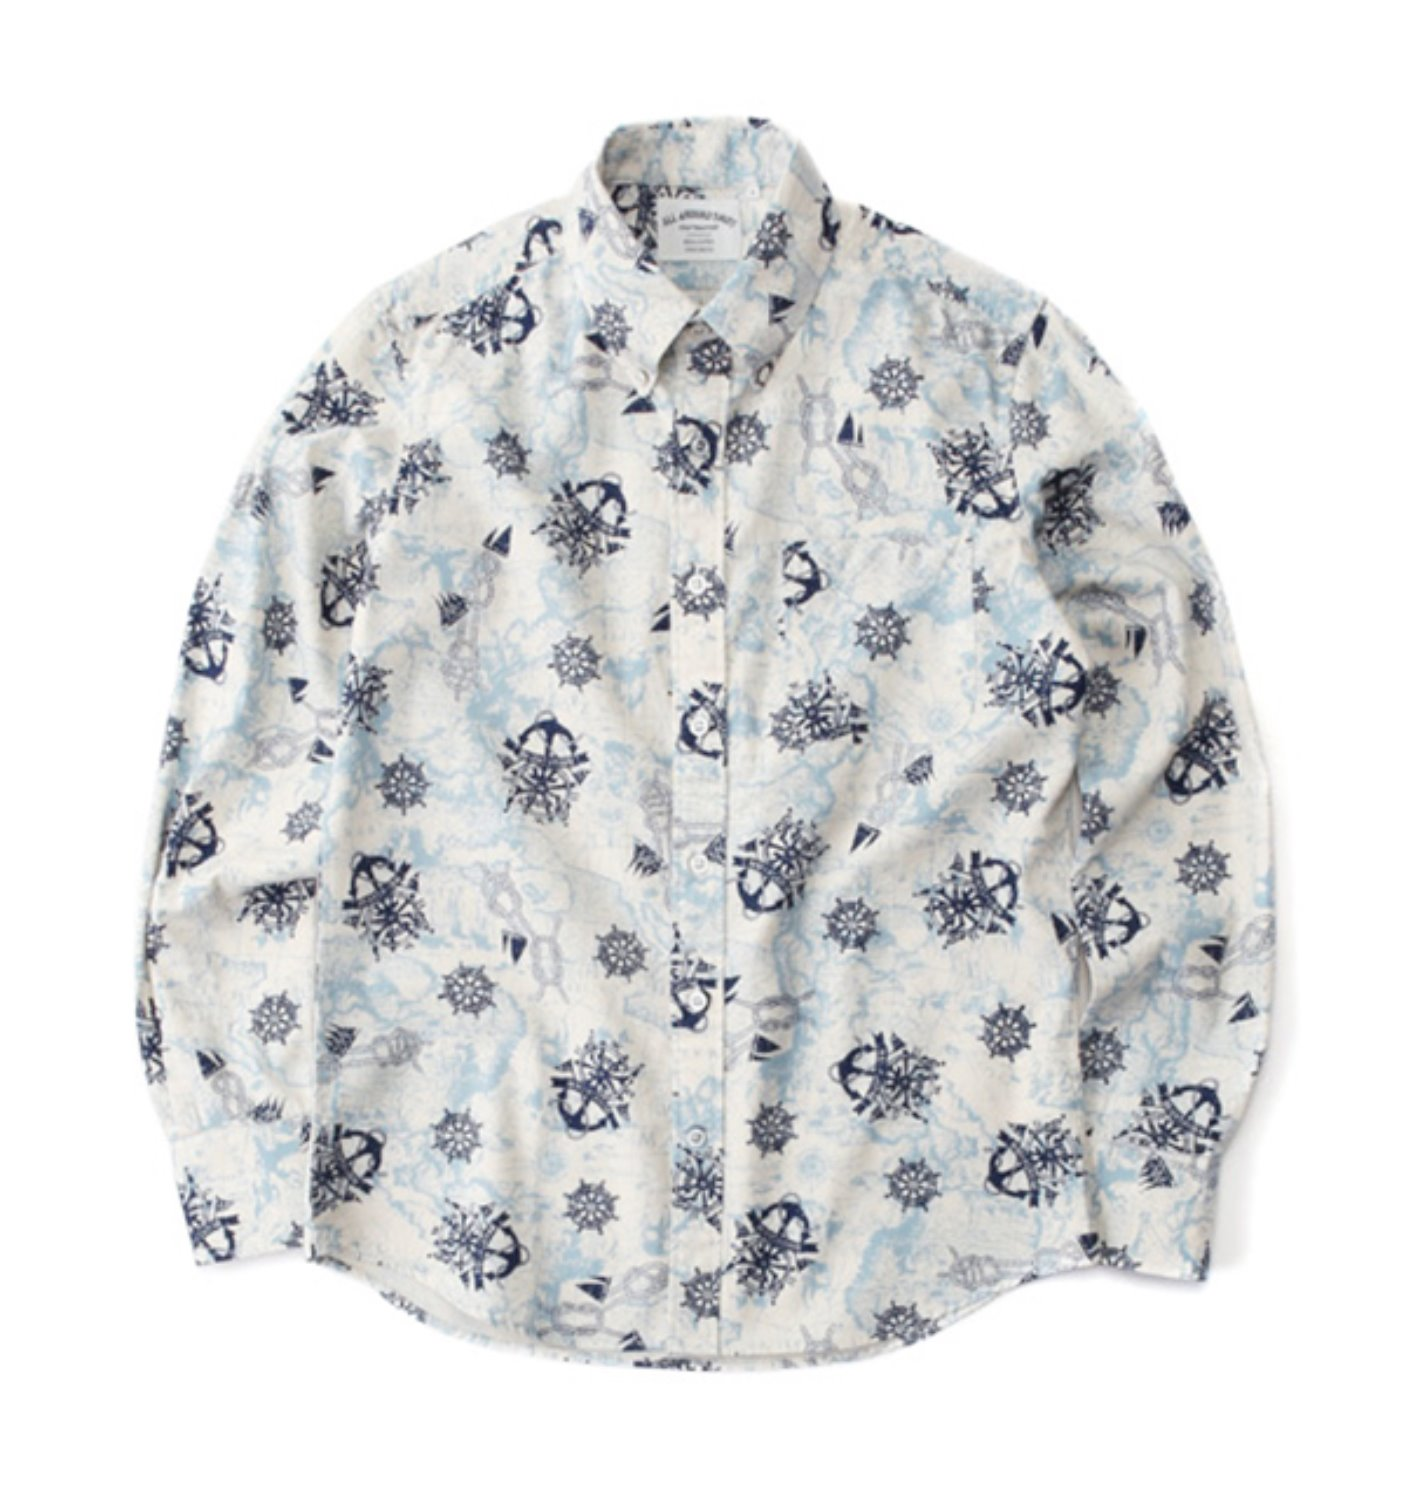 SS01 MAP SHIRT